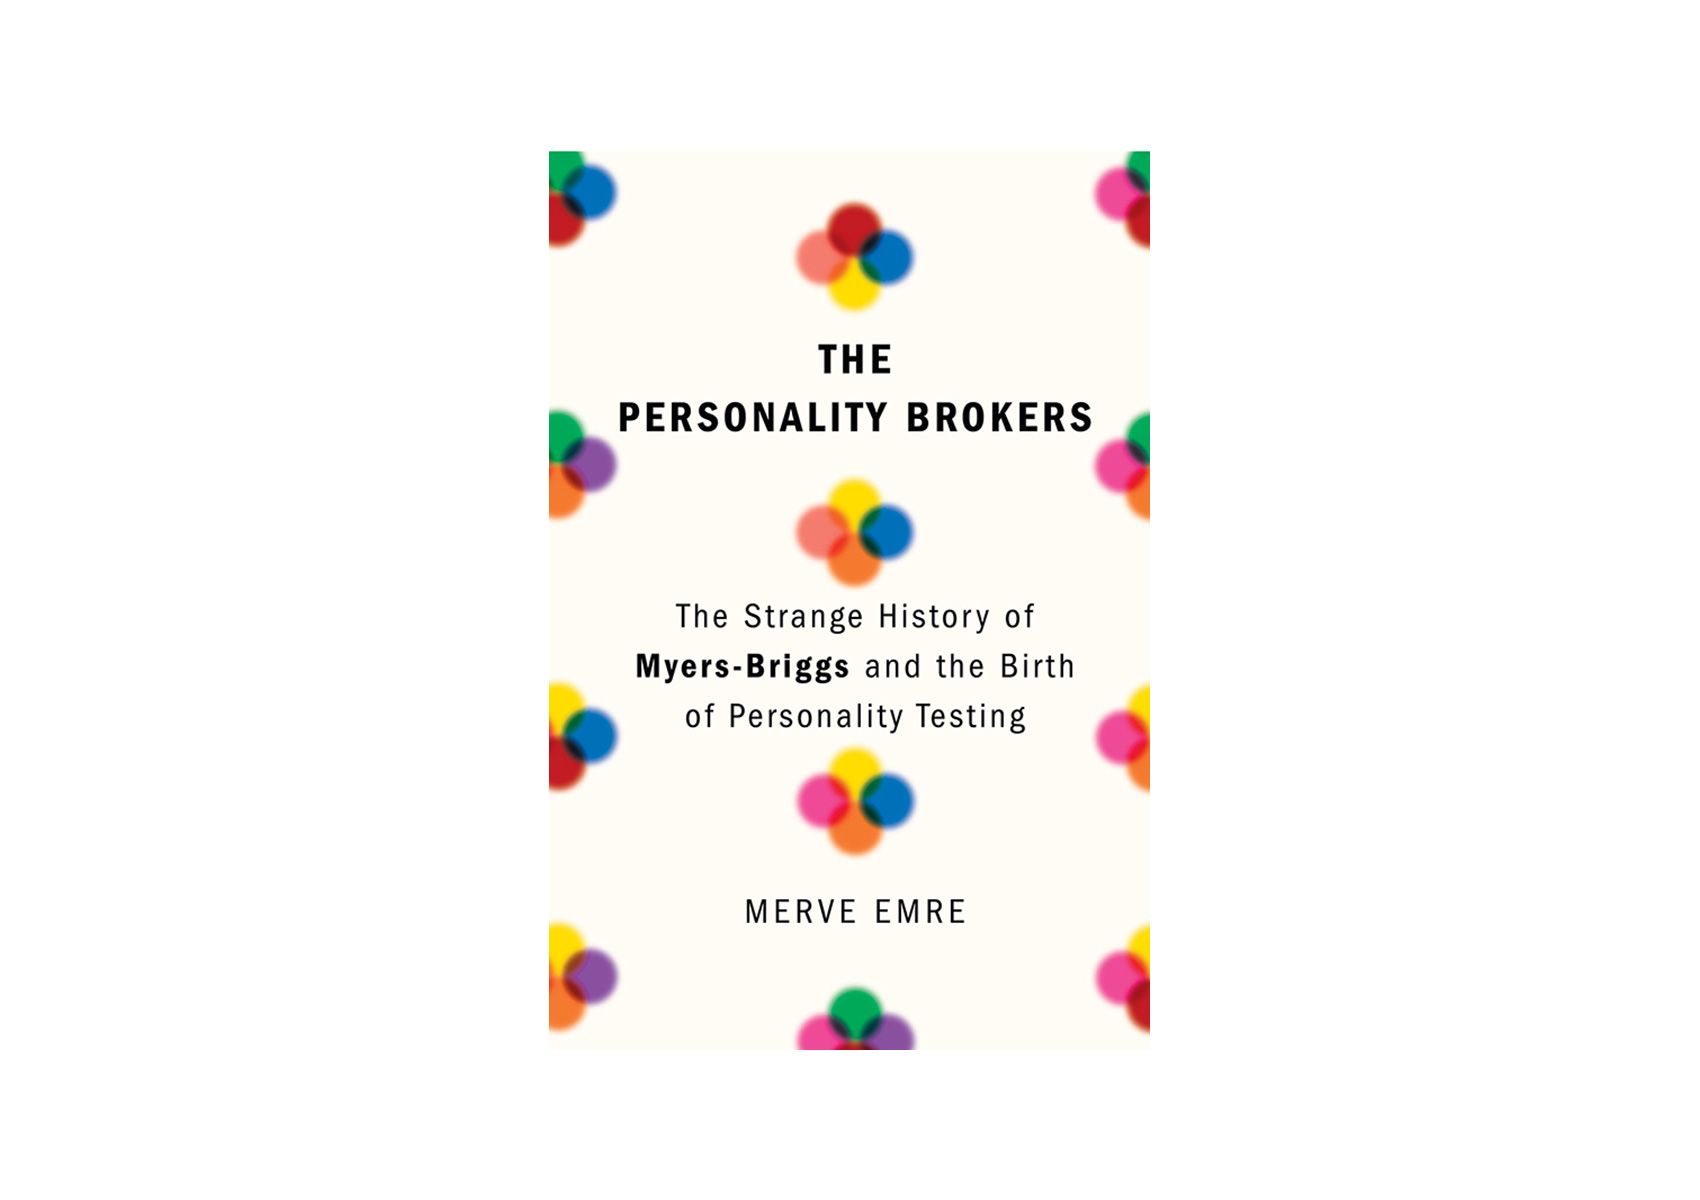 The Personality Brokers, by Merve Emre